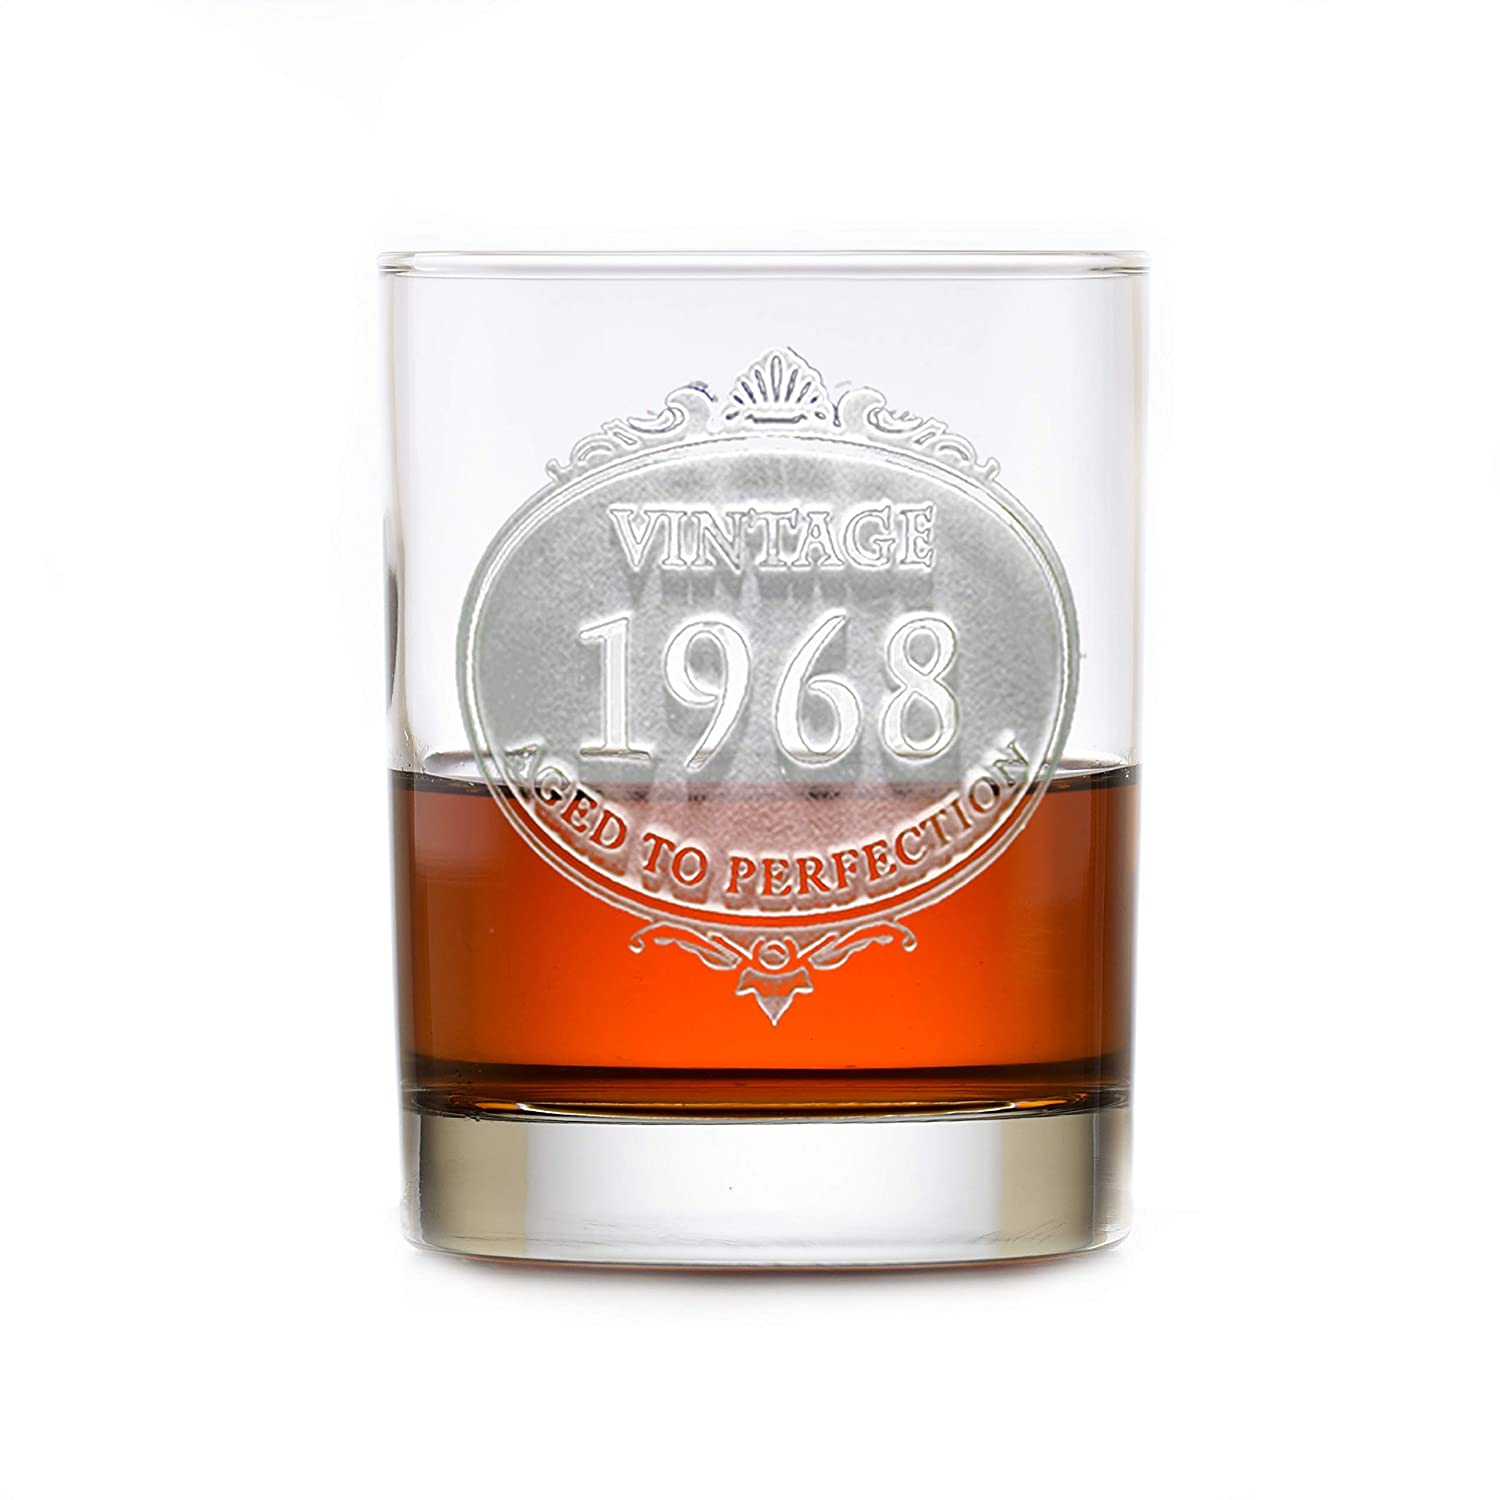 Super popular specialty store Vintage Year National uniform free shipping Engraved Bourbon Glasses 2 Of Set